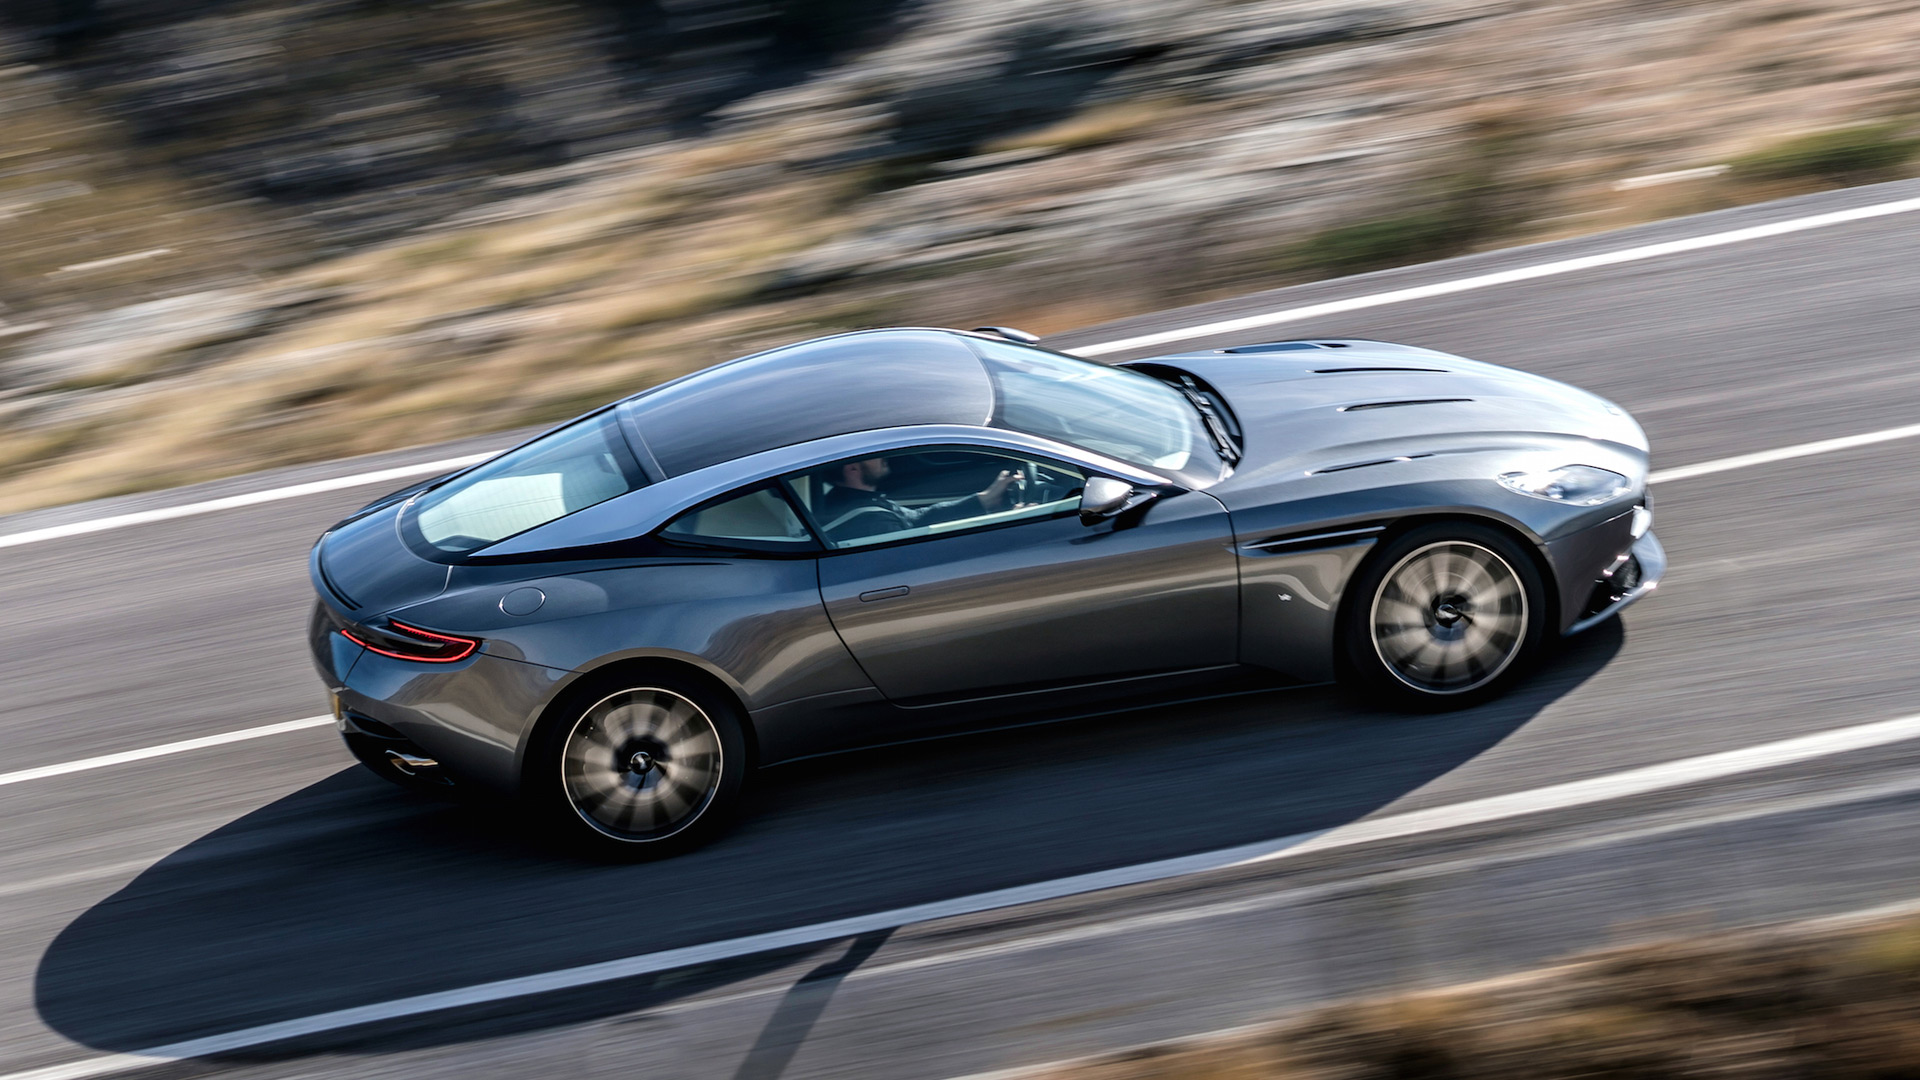 2017 Mini Coupe Prices >> 2017 Aston Martin DB11 Review, Ratings, Specs, Prices, and Photos - The Car Connection